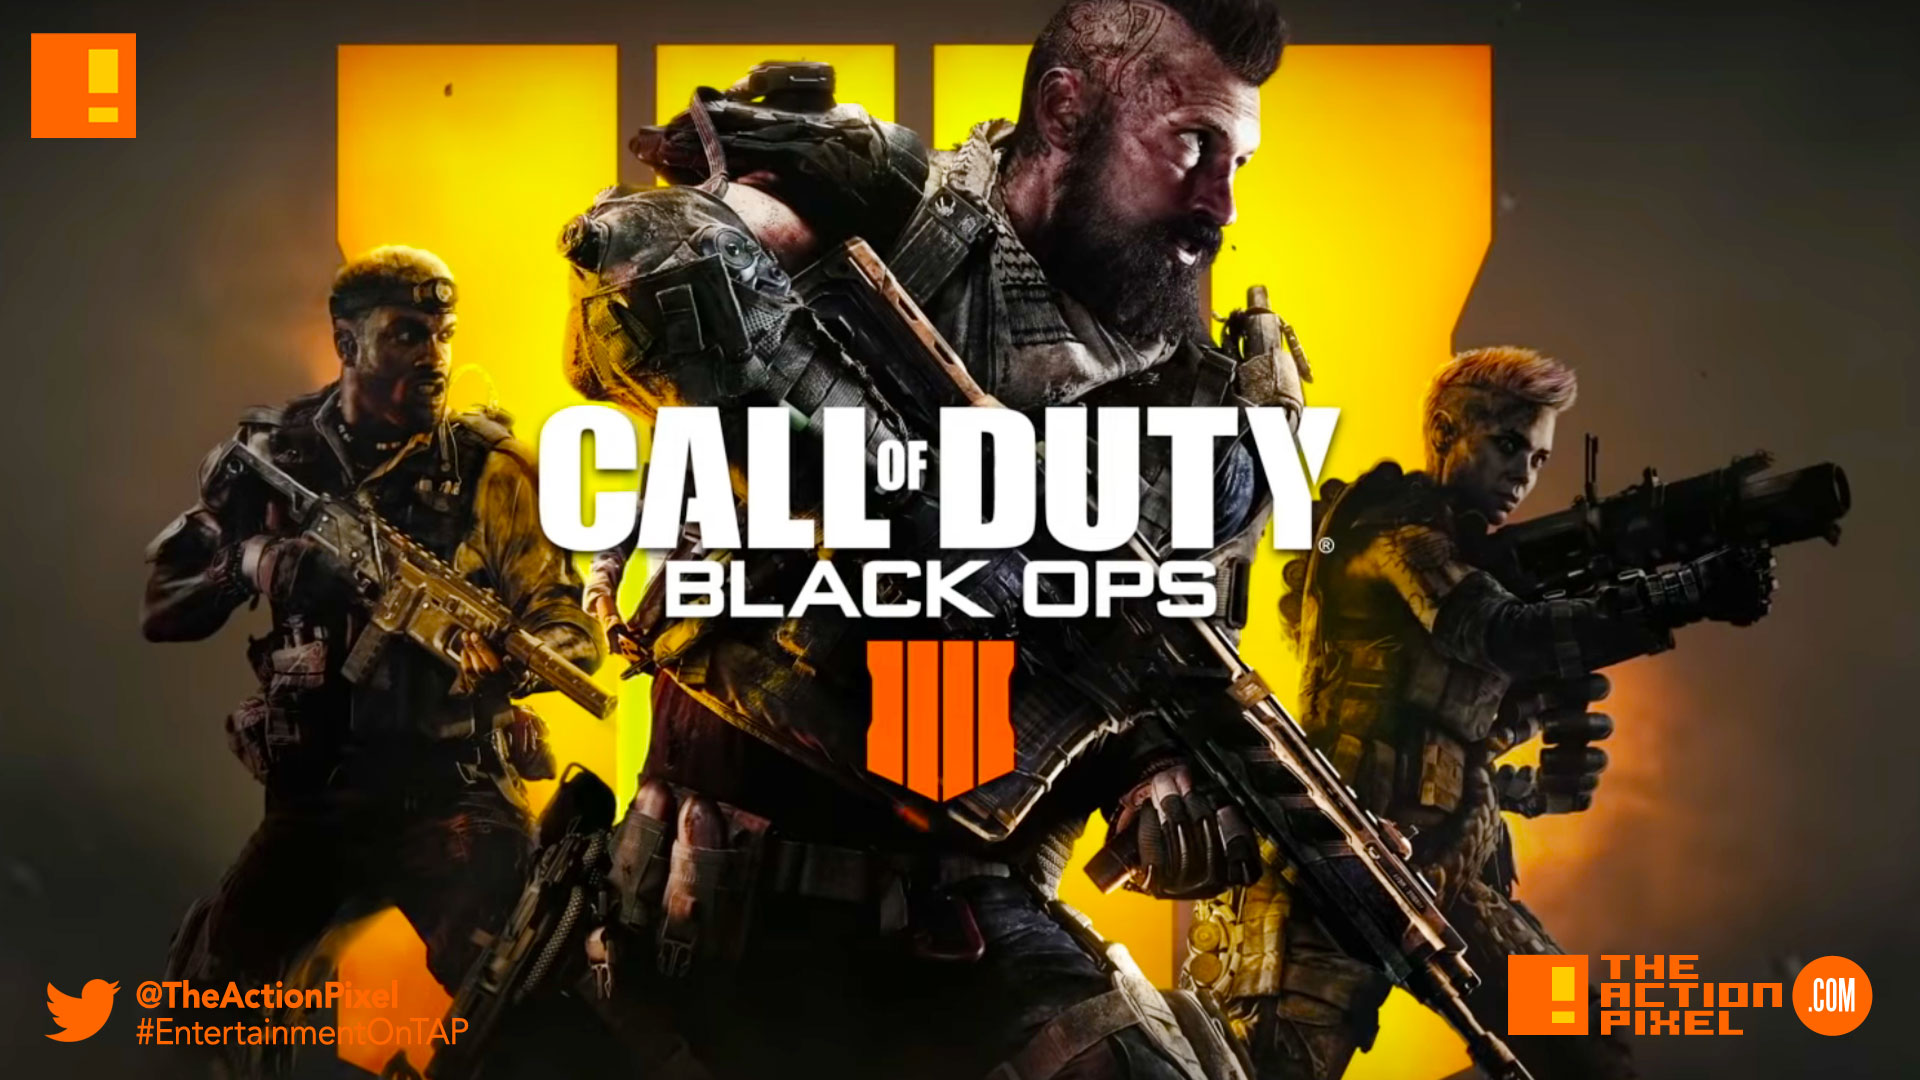 zombies, the action pixel ,black ops 4, black ops, call of duty, call of duty black ops 4, cod black ops 4, bo4,theactionpixel, entertainment on tap,teaser, cod bo4 zombies,